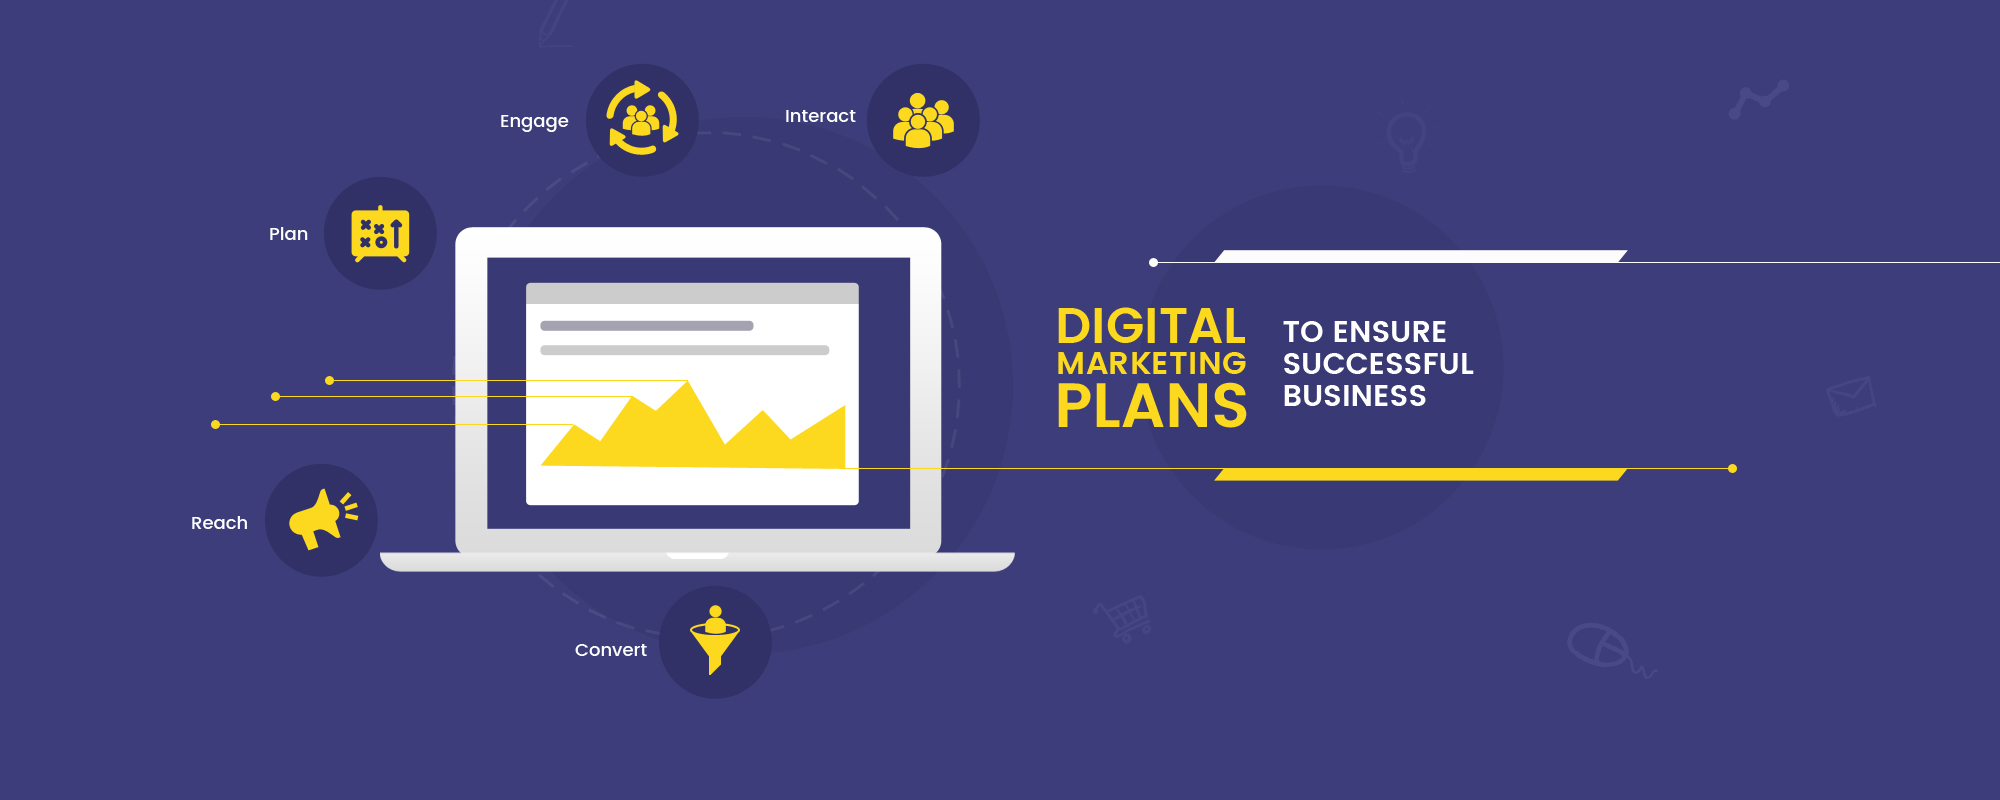 A Thorough Digital Marketing Plan For Your Online Business